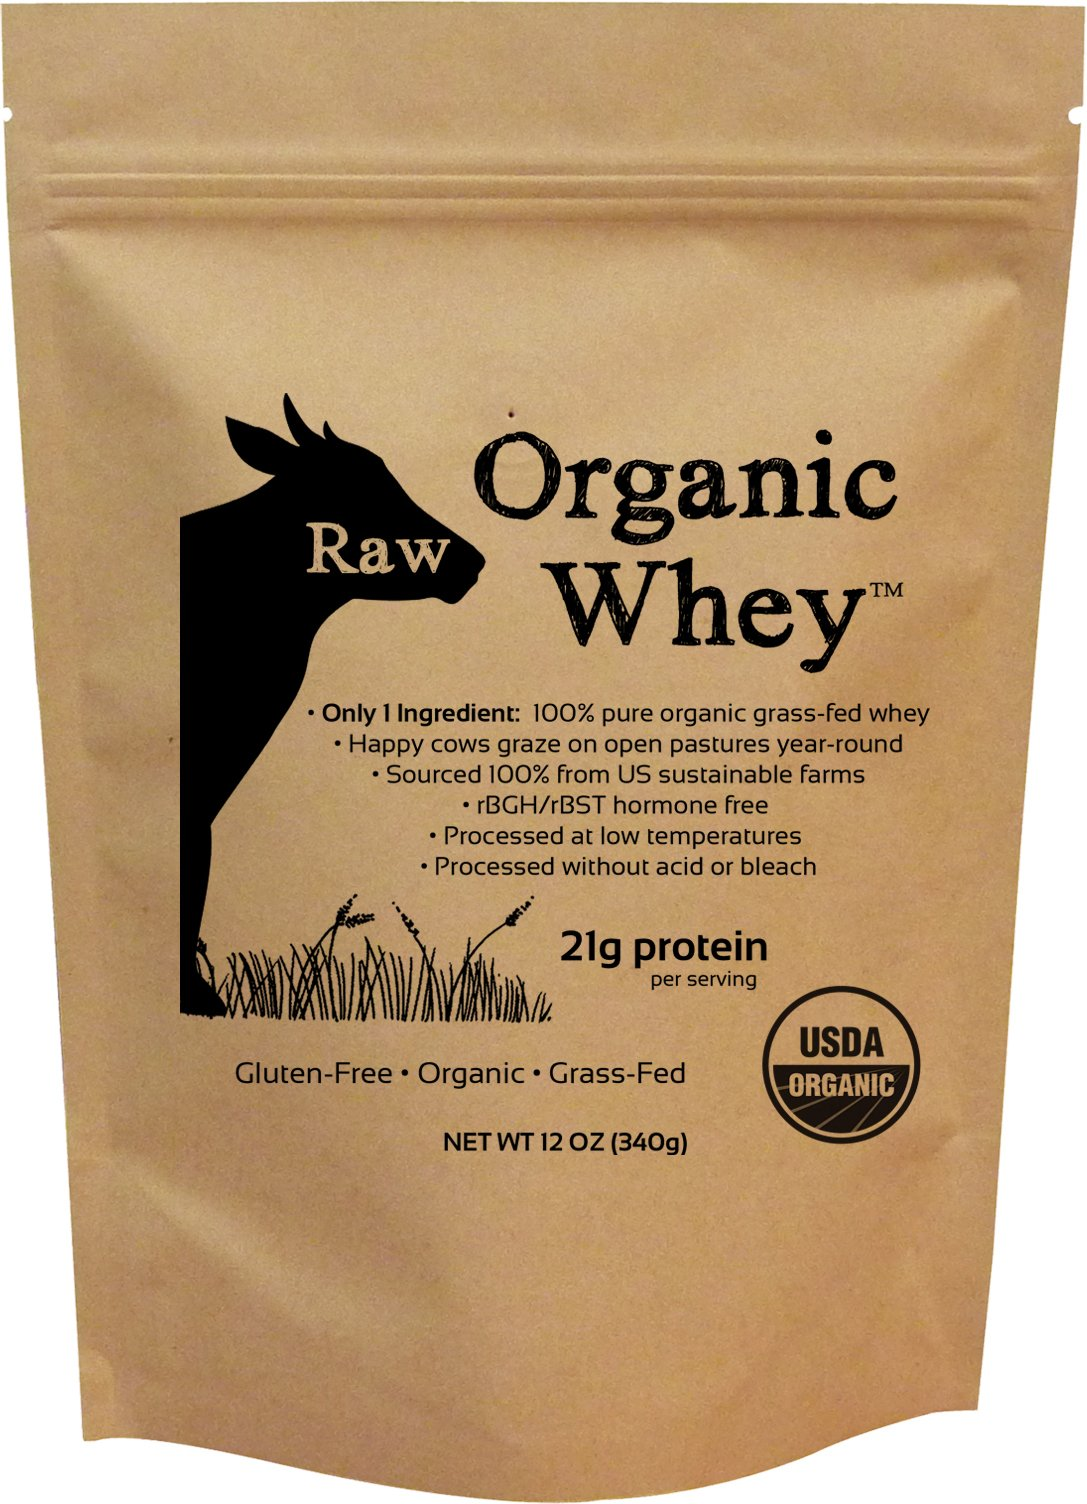 Raw Organic Whey - USDA Certified Organic Whey Protein Powder, Happy Healthy Cows, COLD PROCESSED Undenatured 100% Grass Fed + NON-GMO + rBGH Free + Gluten Free, Unflavored, Unsweetened (12 OZ) by Raw Organic Whey